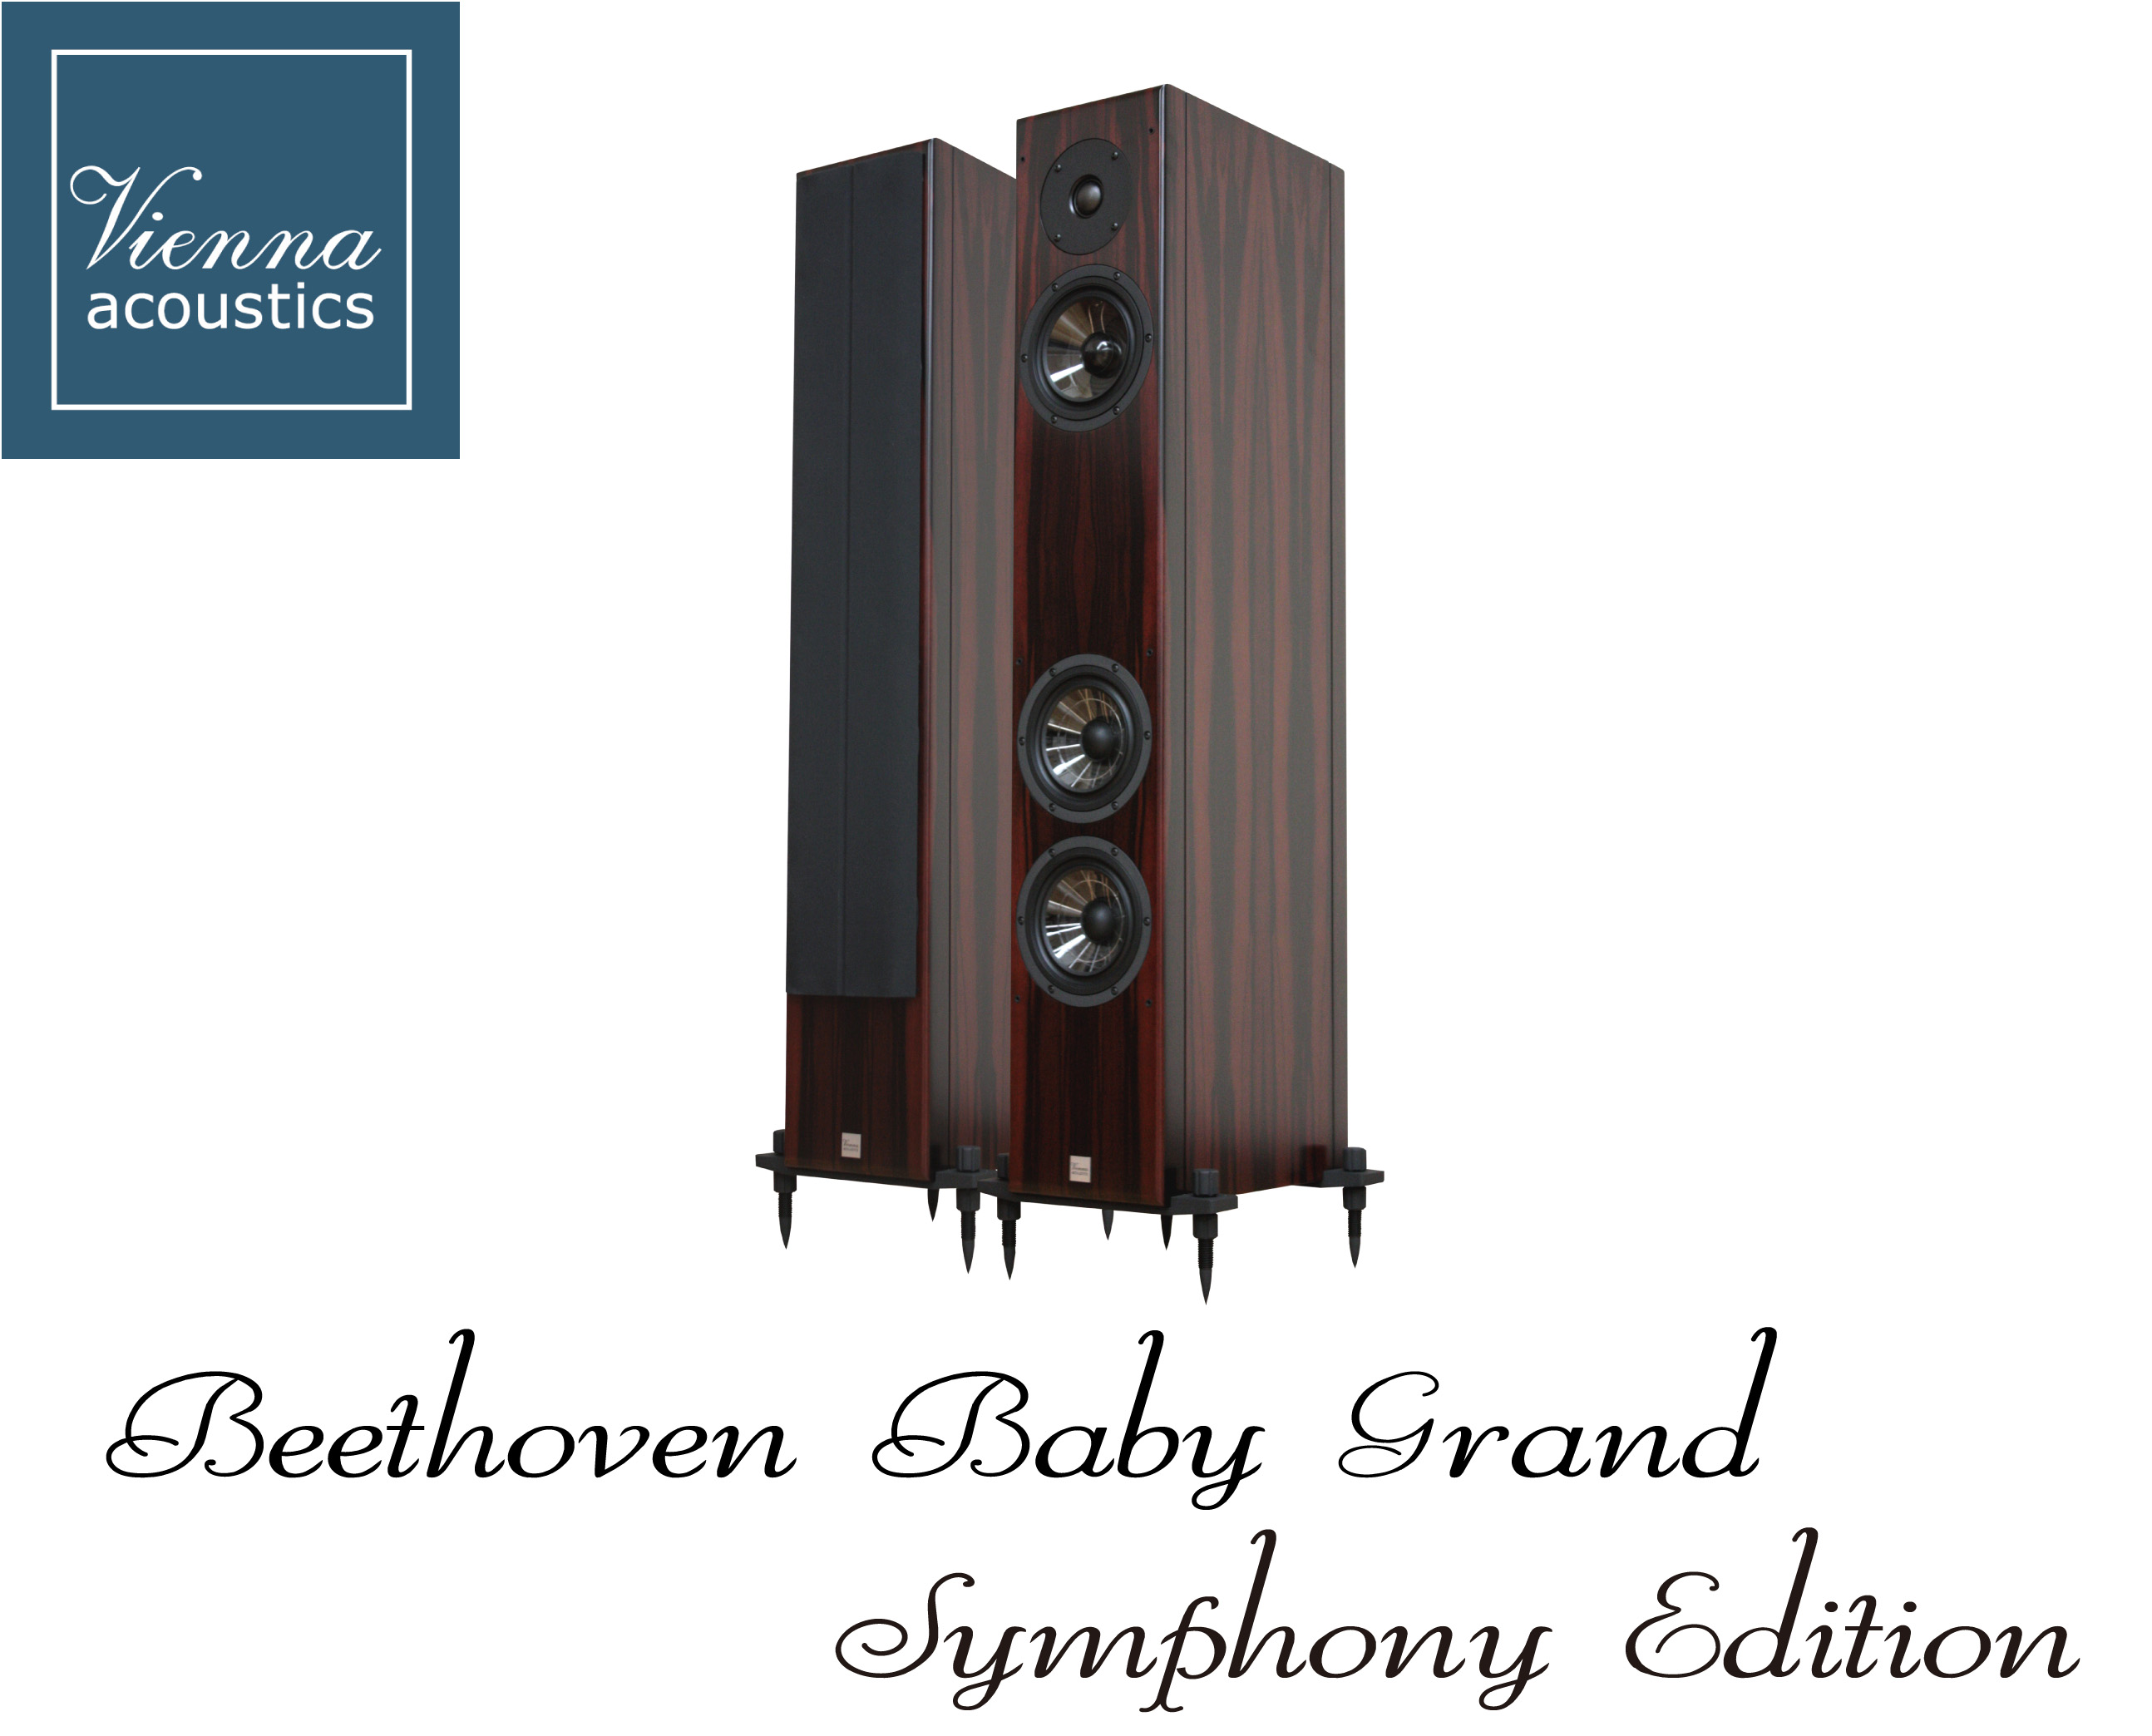 Vienna Acostics Beethoven Baby Grand Symphony Edition highend audio speaker